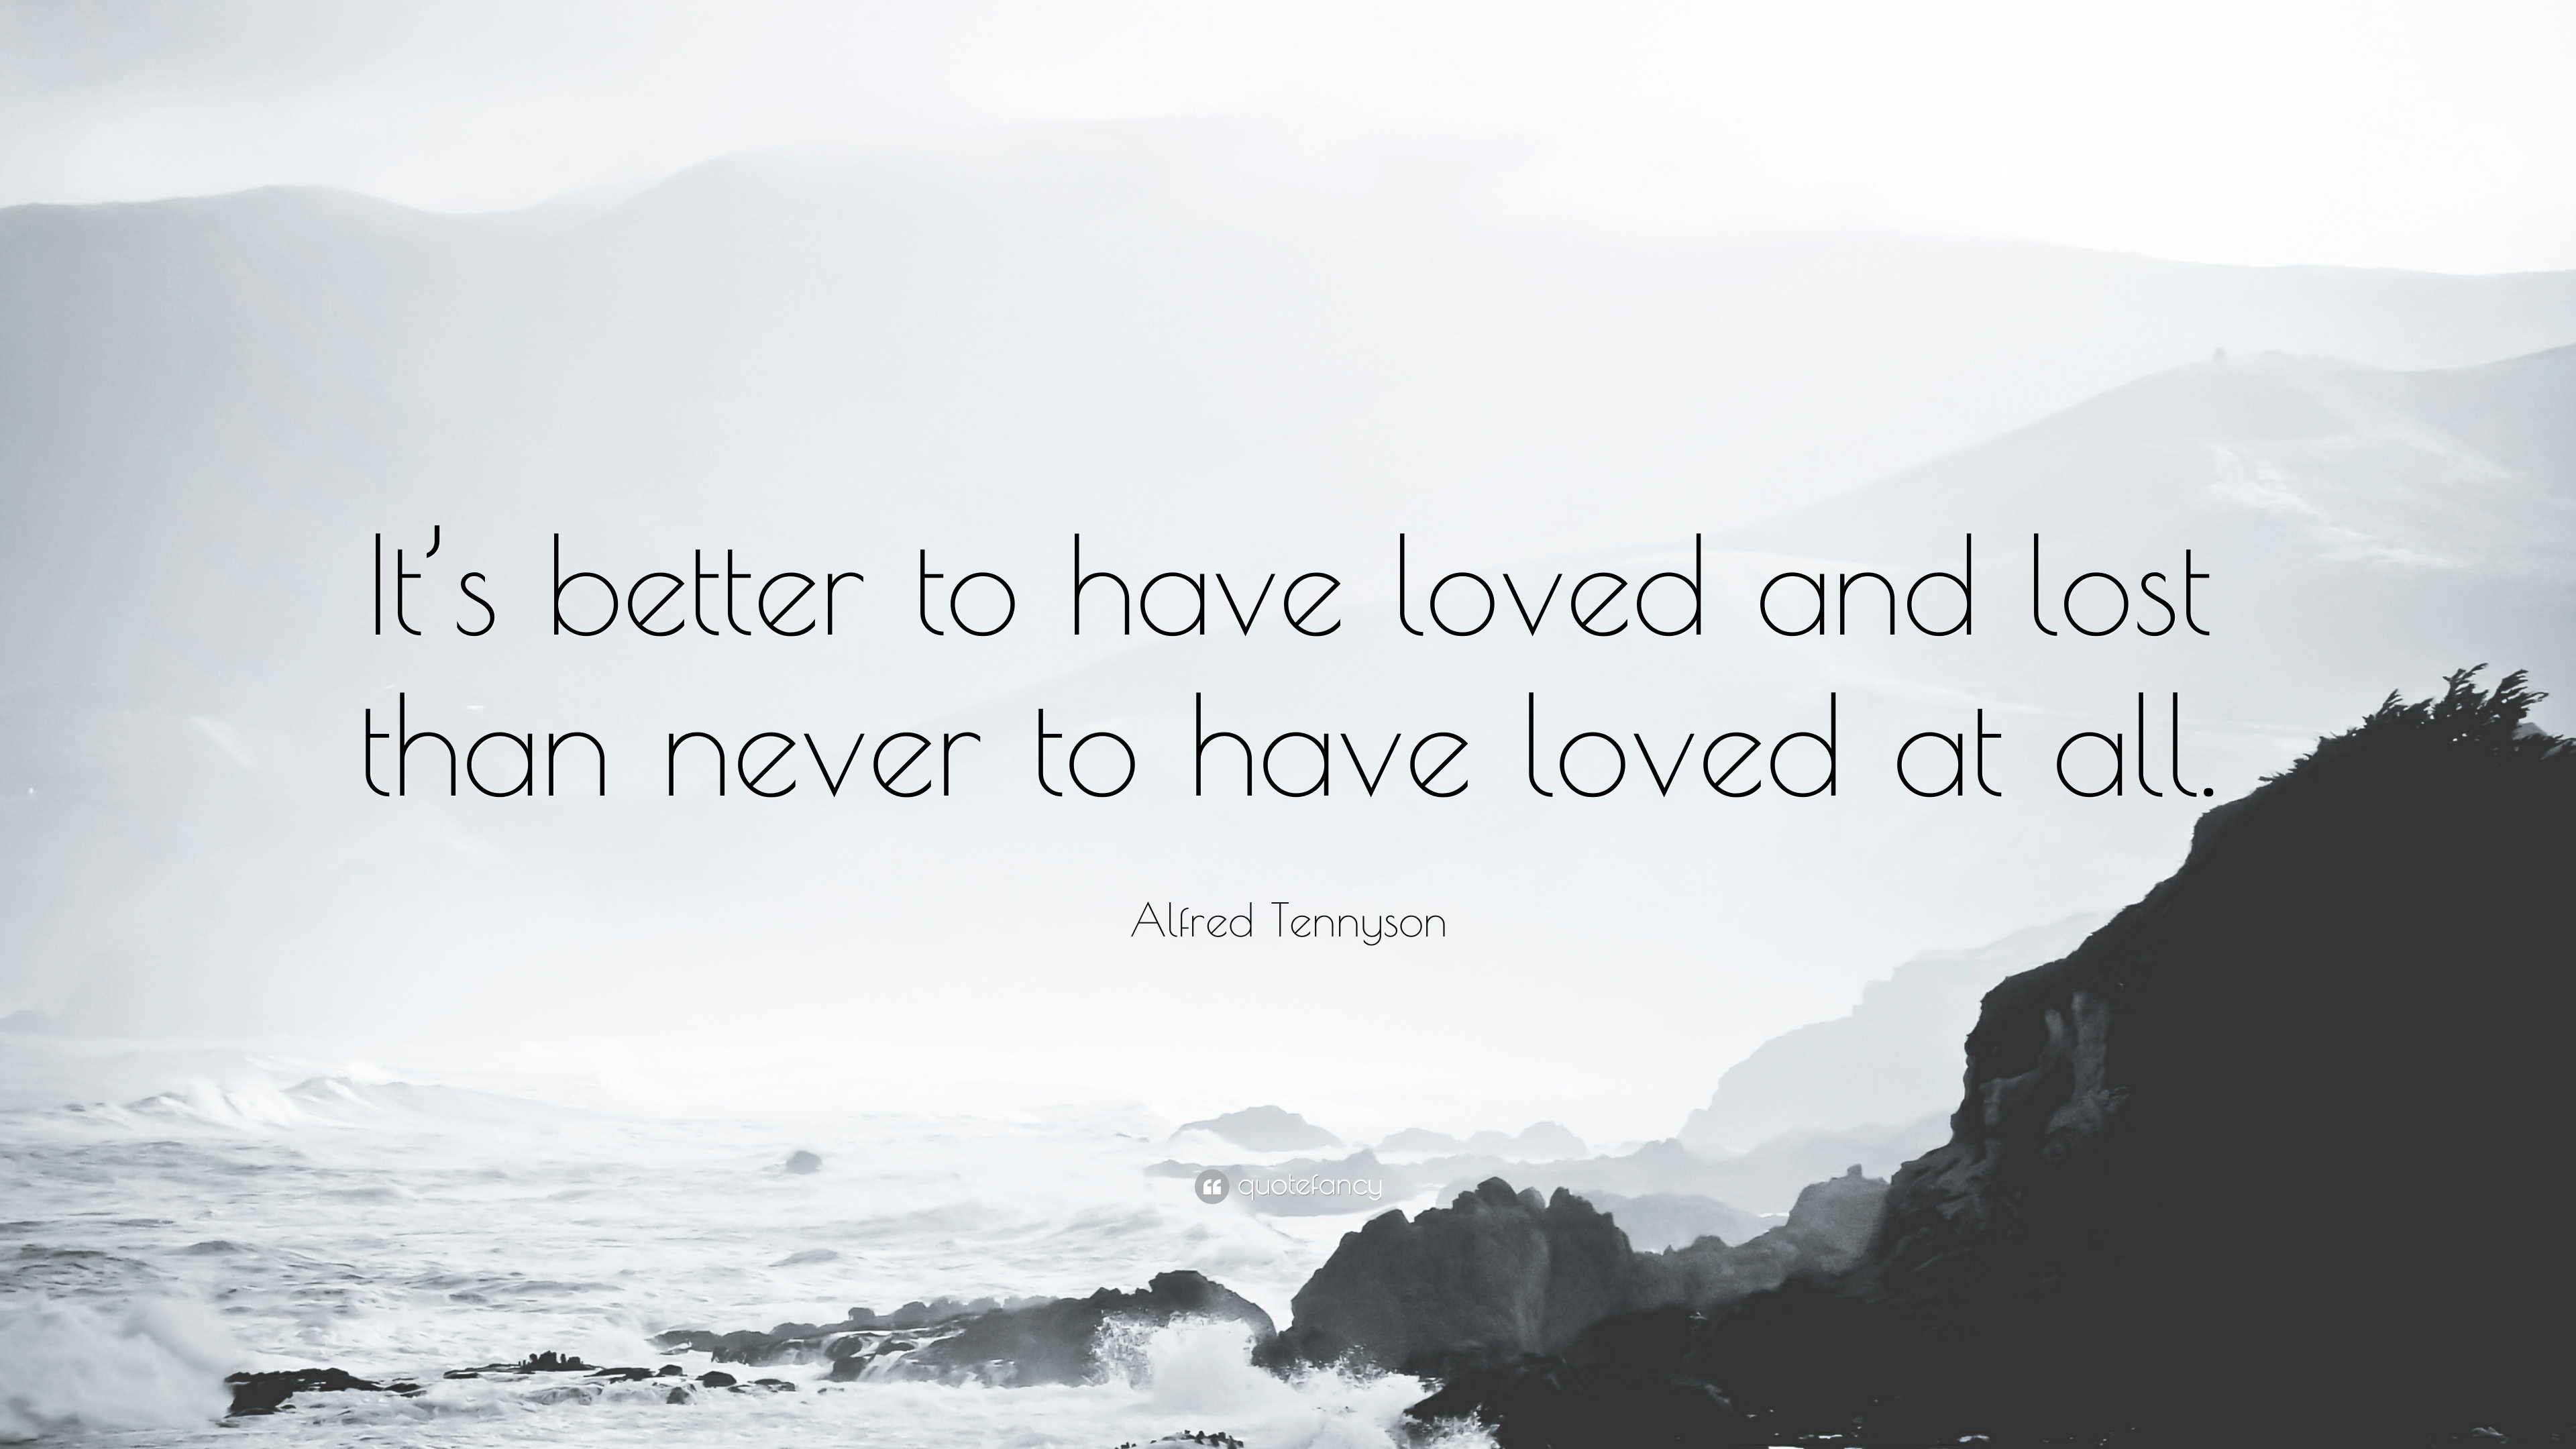 is it better to have loved and lost Definition of 'tis better to have loved and lost than never to have loved at all in the idioms dictionary 'tis better to have loved and lost than never to have.